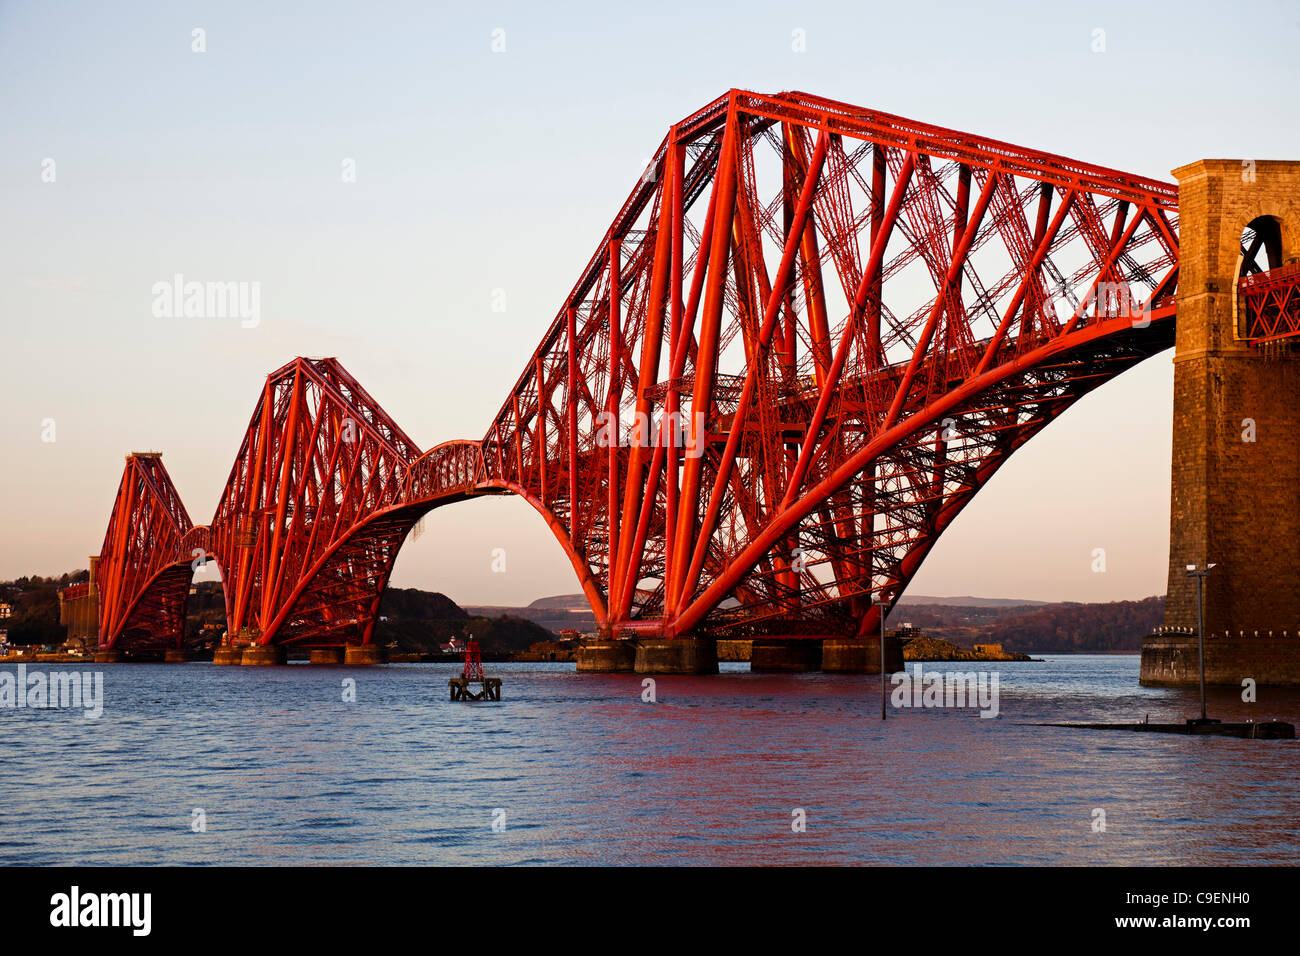 Forth Rail Bridge 09 December 2011 repainting and refurbishment now complete, South Queensferry, Scotland UK Europe Stock Photo